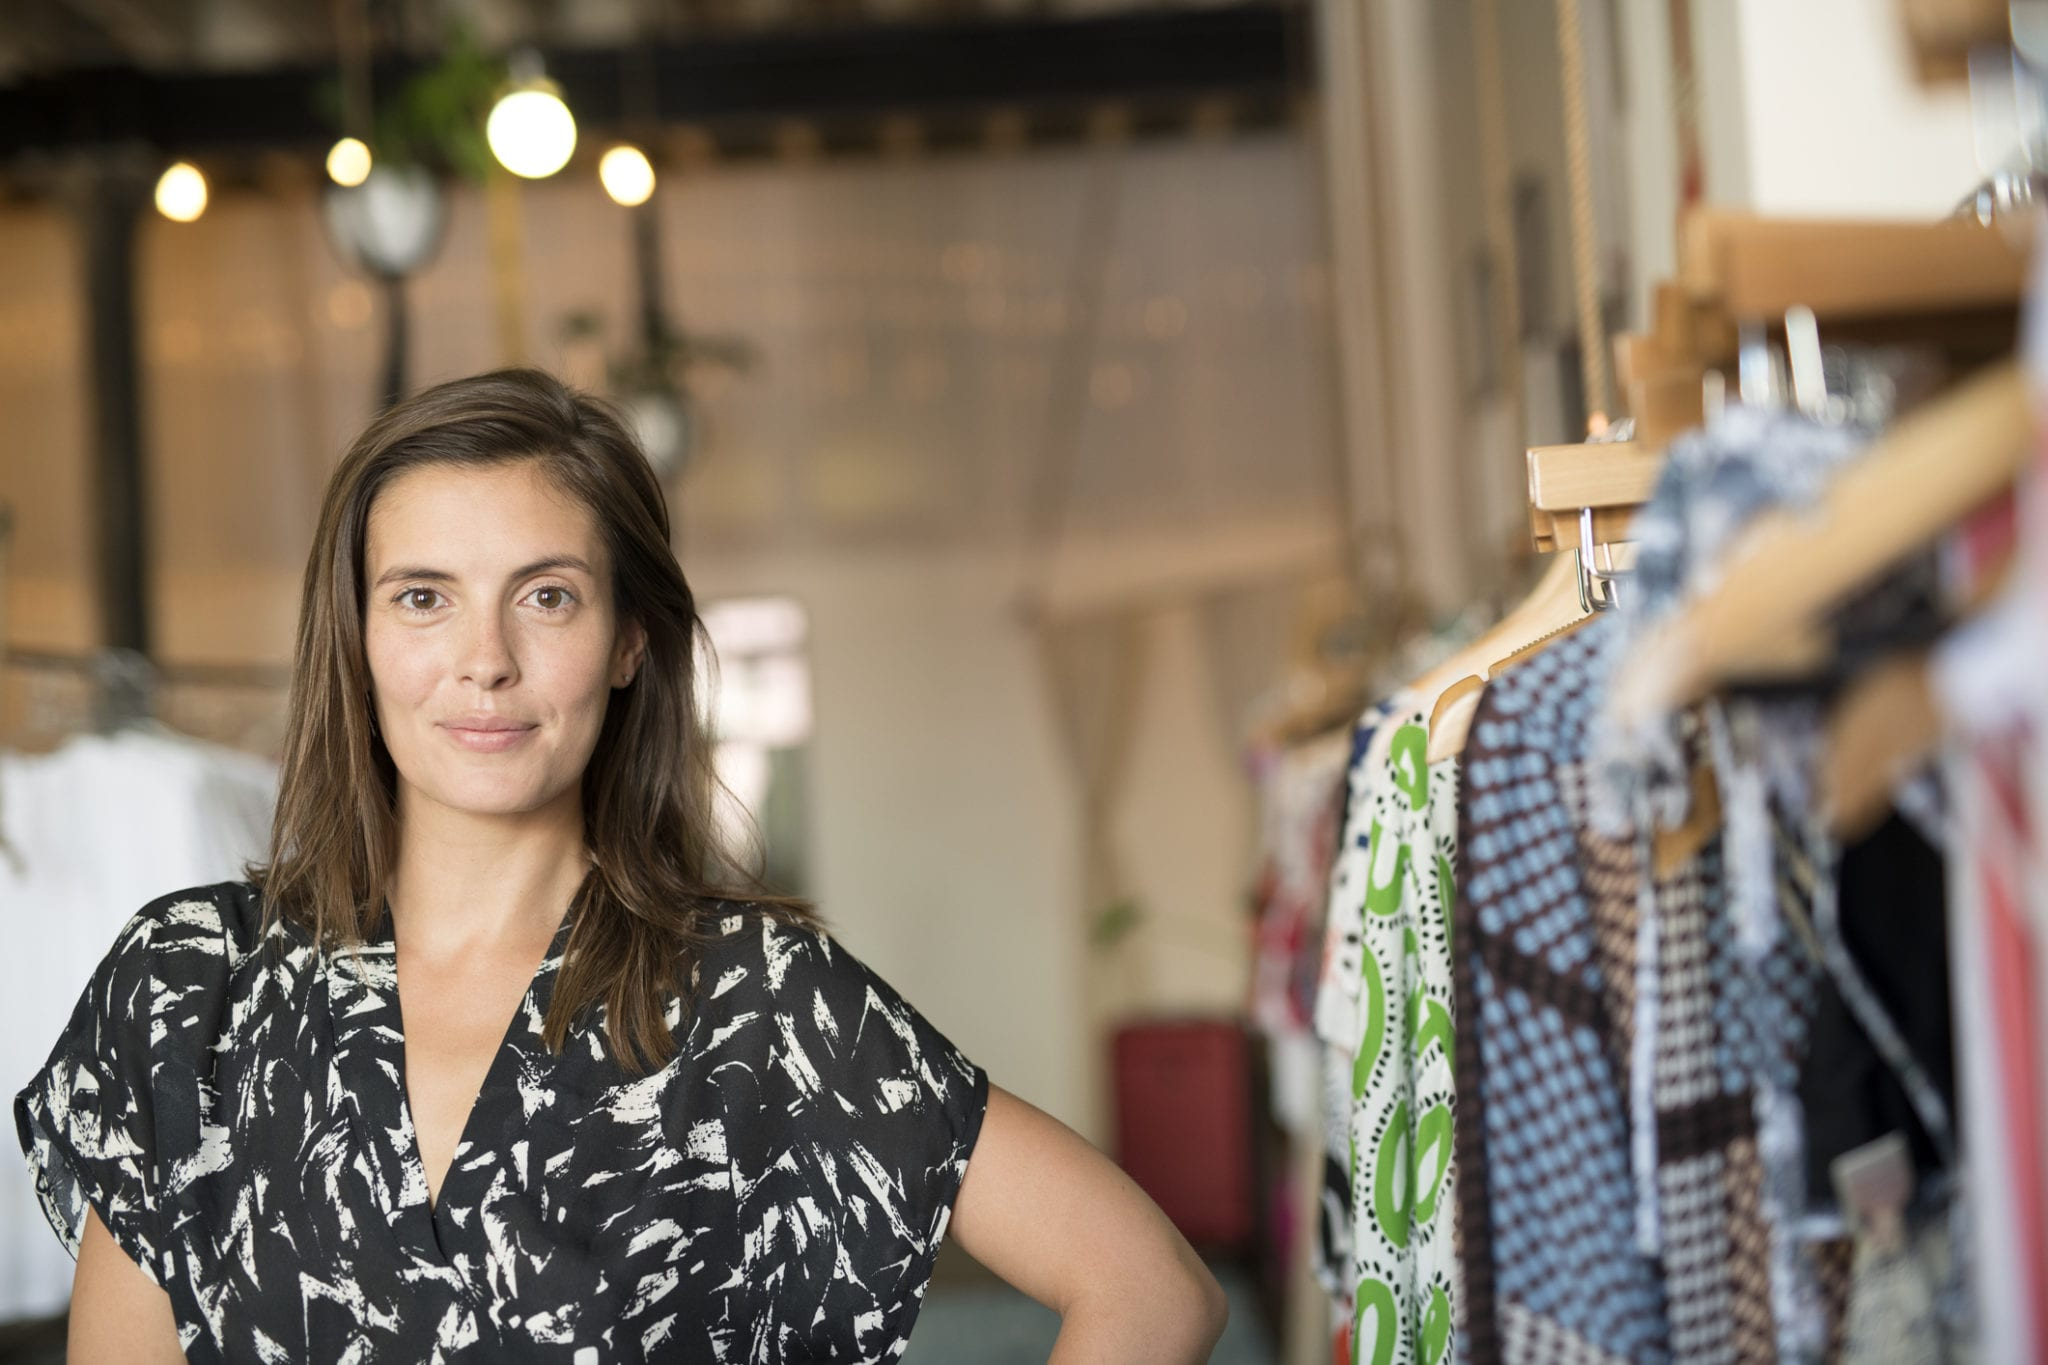 Woman fashion business designer beside clothes rack in store